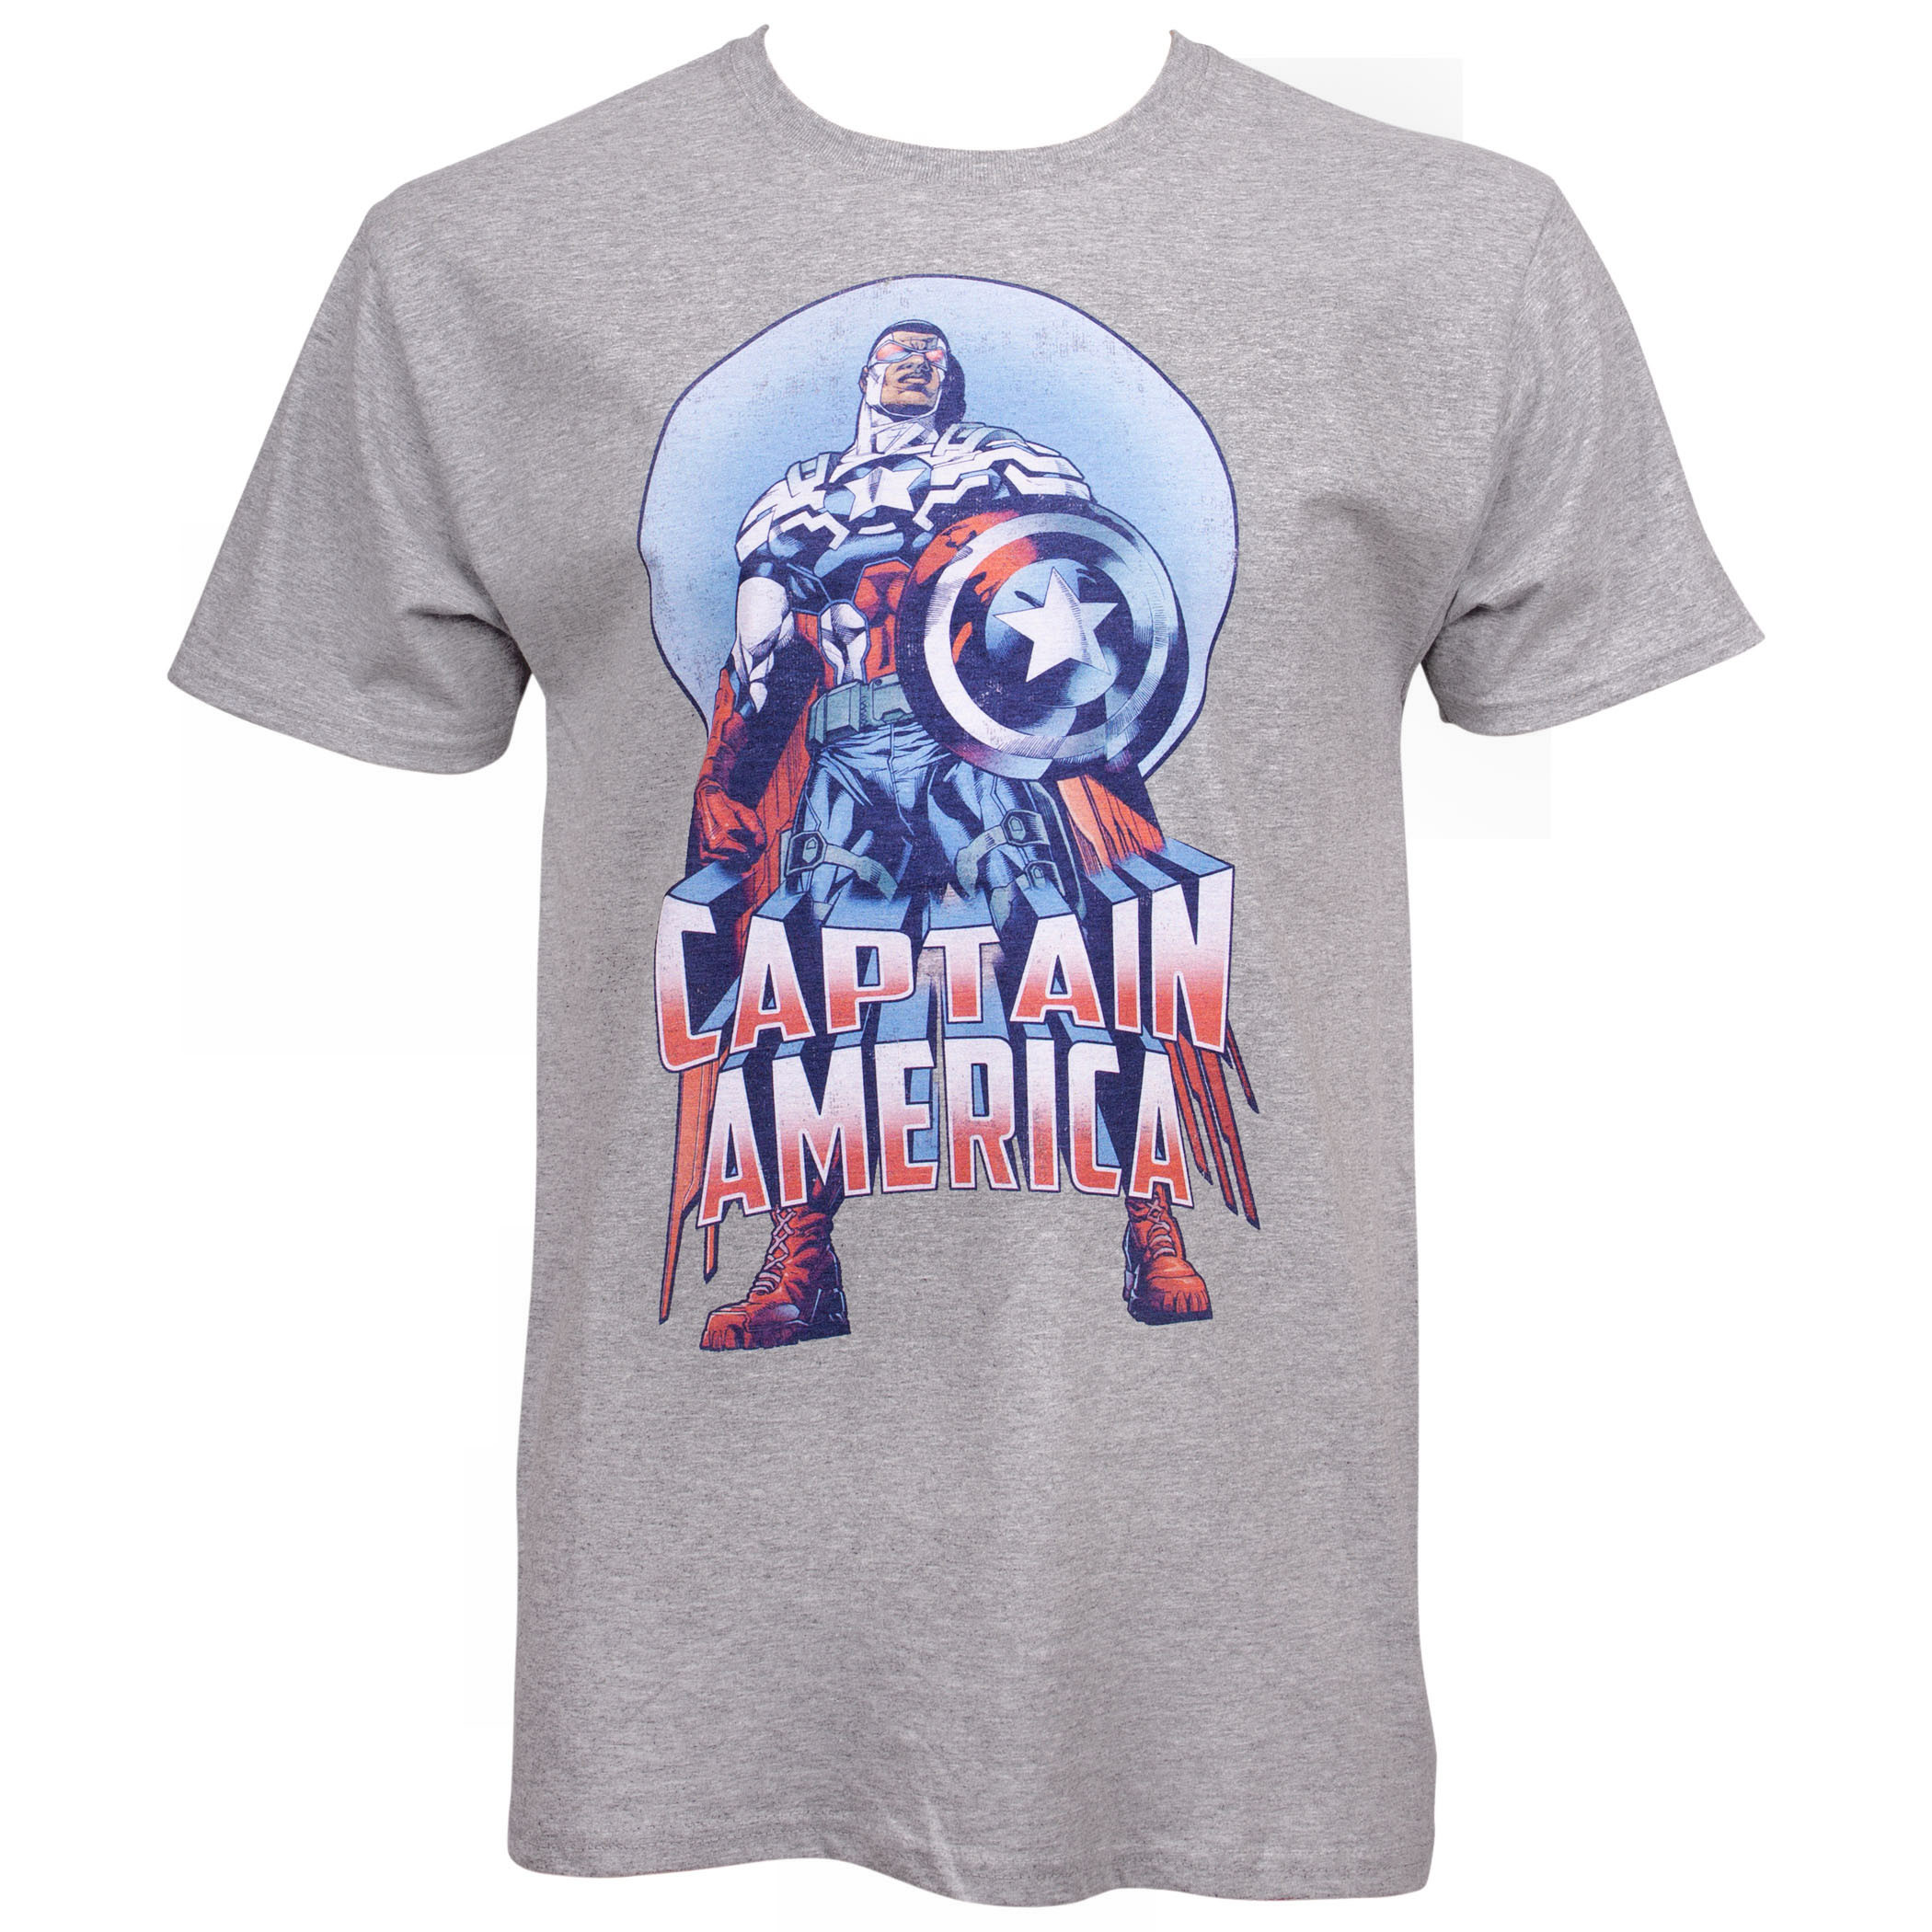 Captain America Falcon T-Shirt